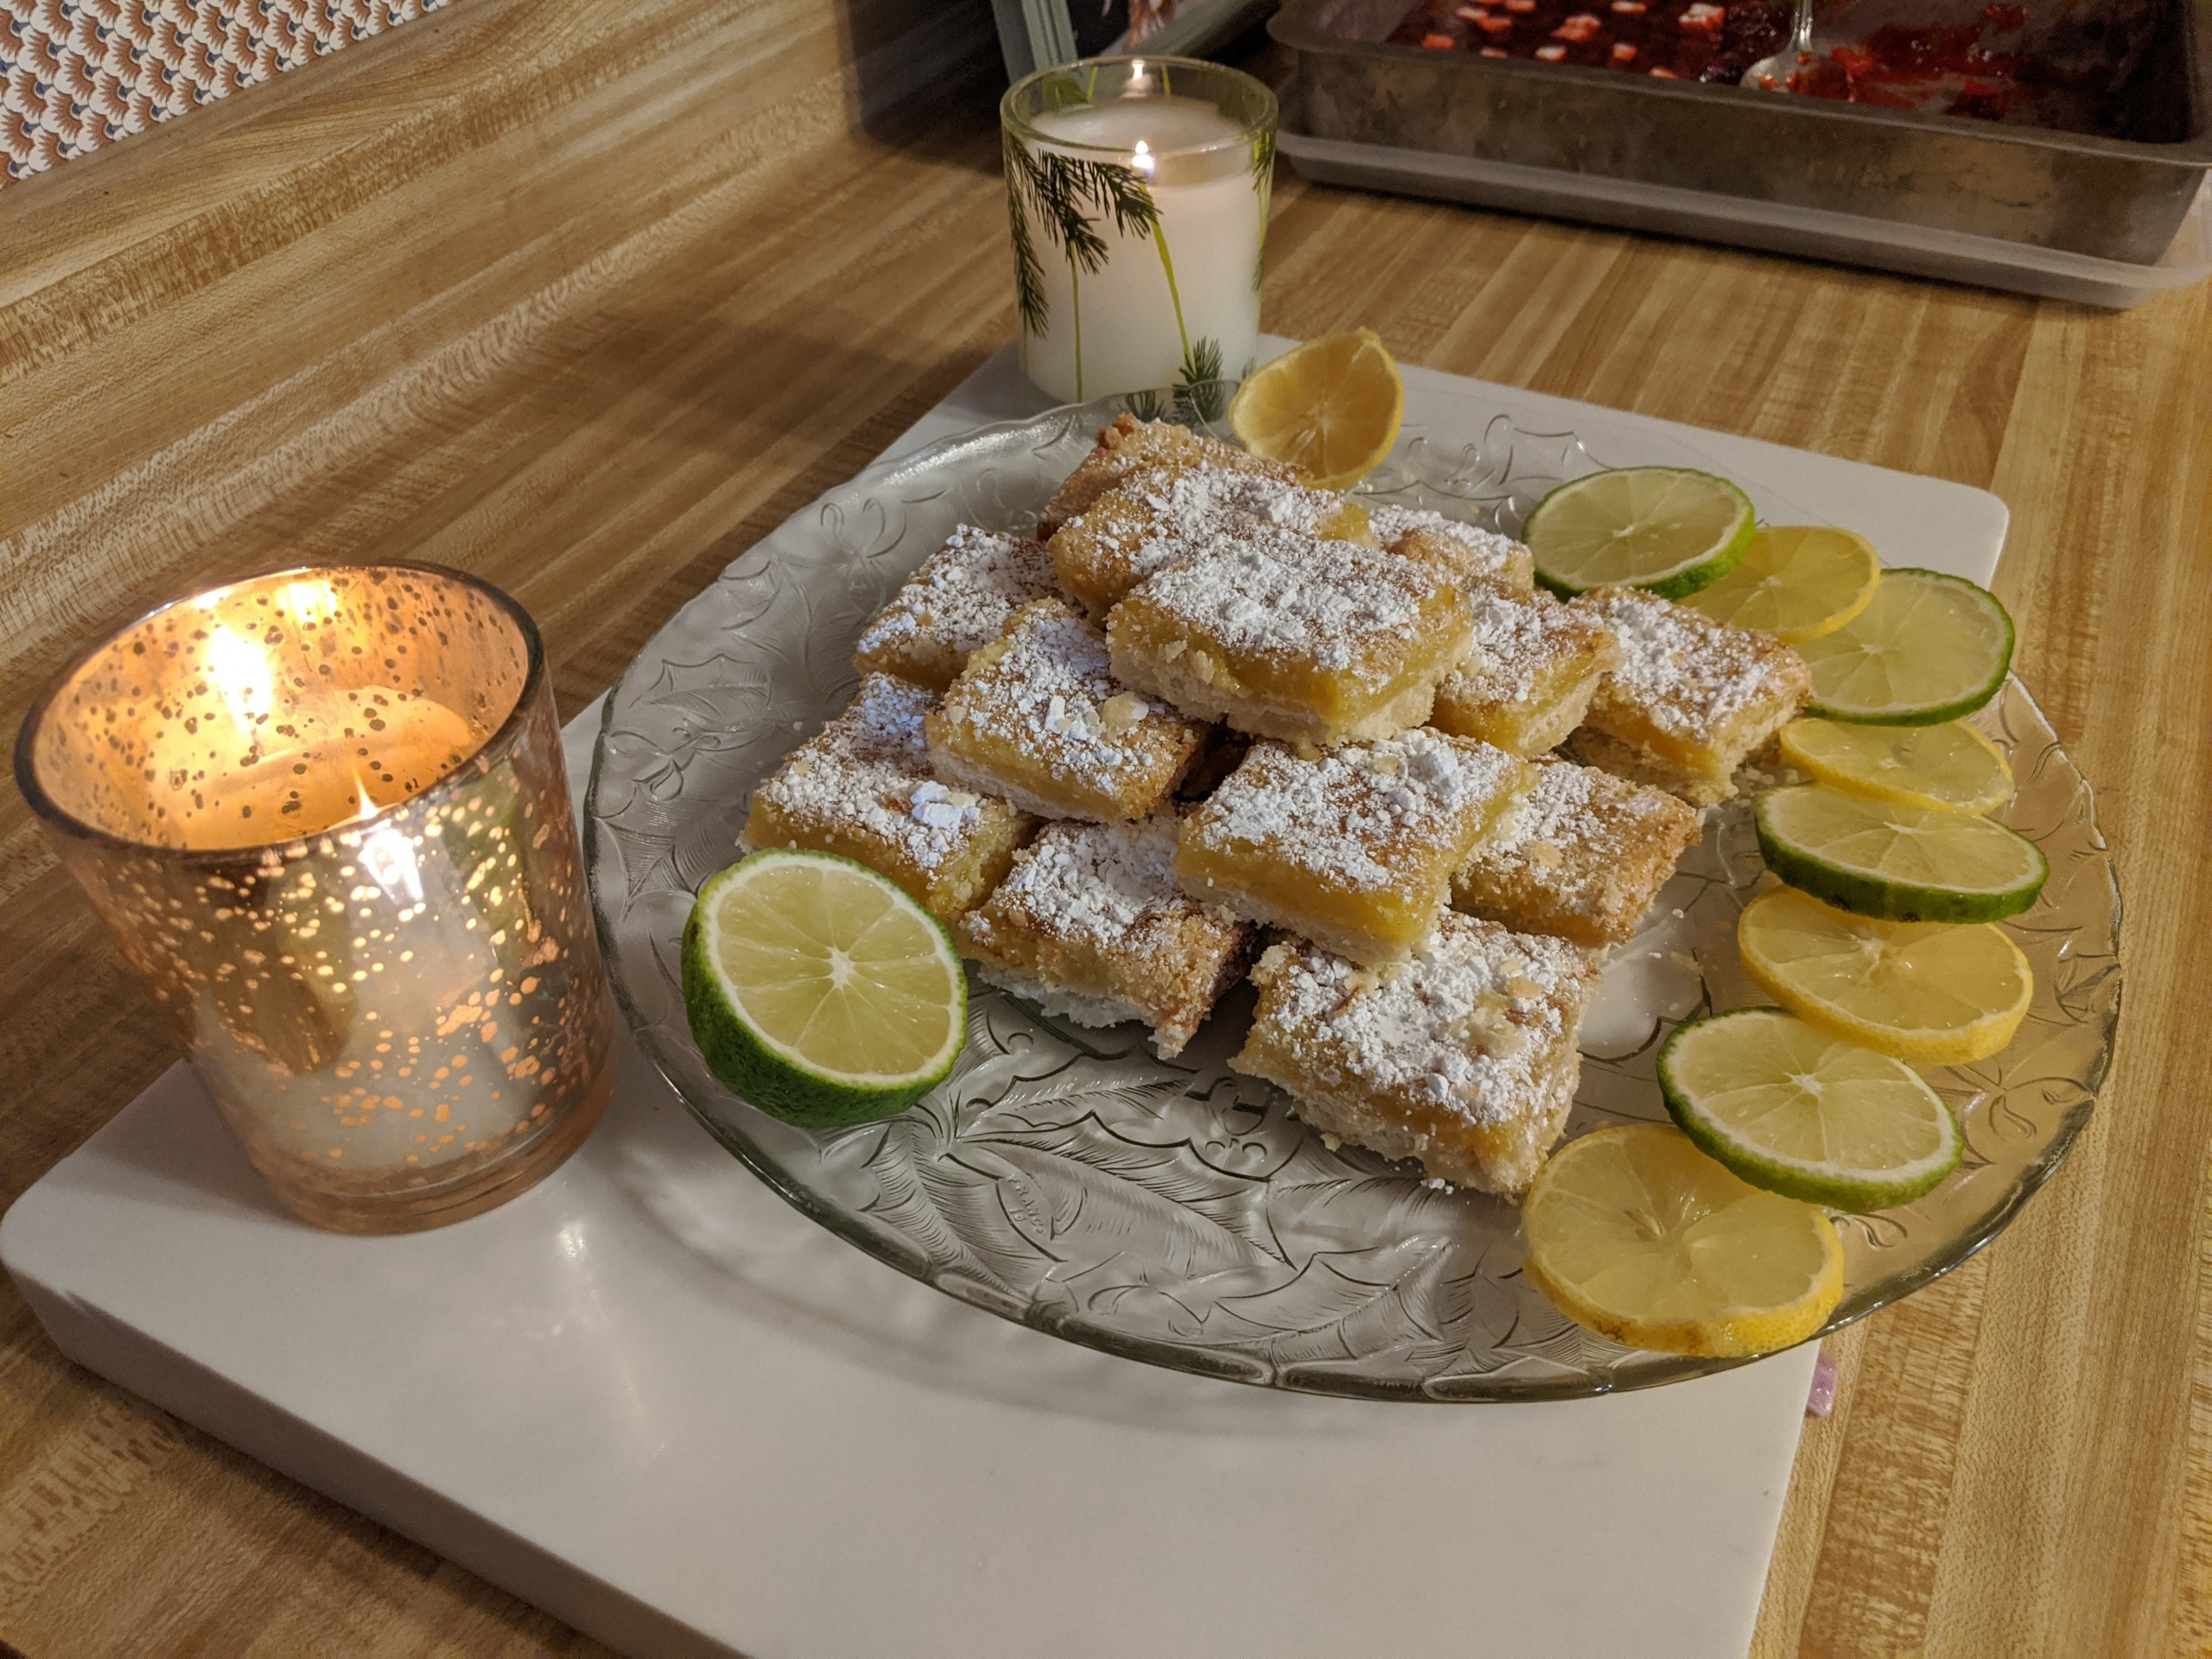 Finished Lemon Bars